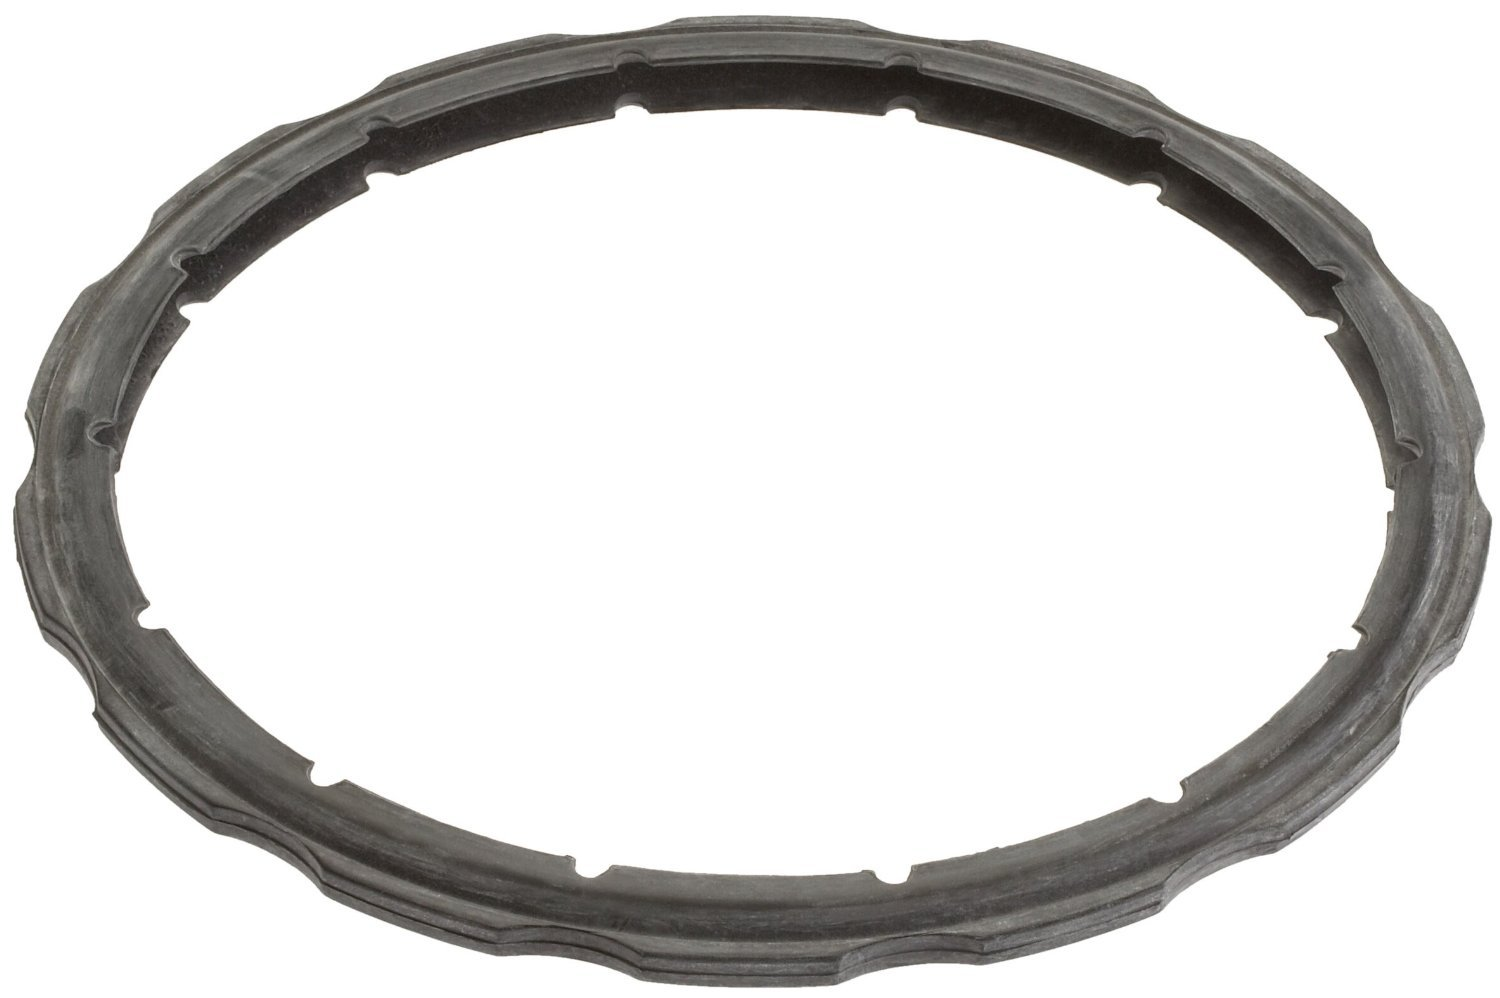 T-fal X9010501 Clipso Replacement Gasket Cookware for Clipso Pressure Cooker P45007 and P45009 Cookware, Gray